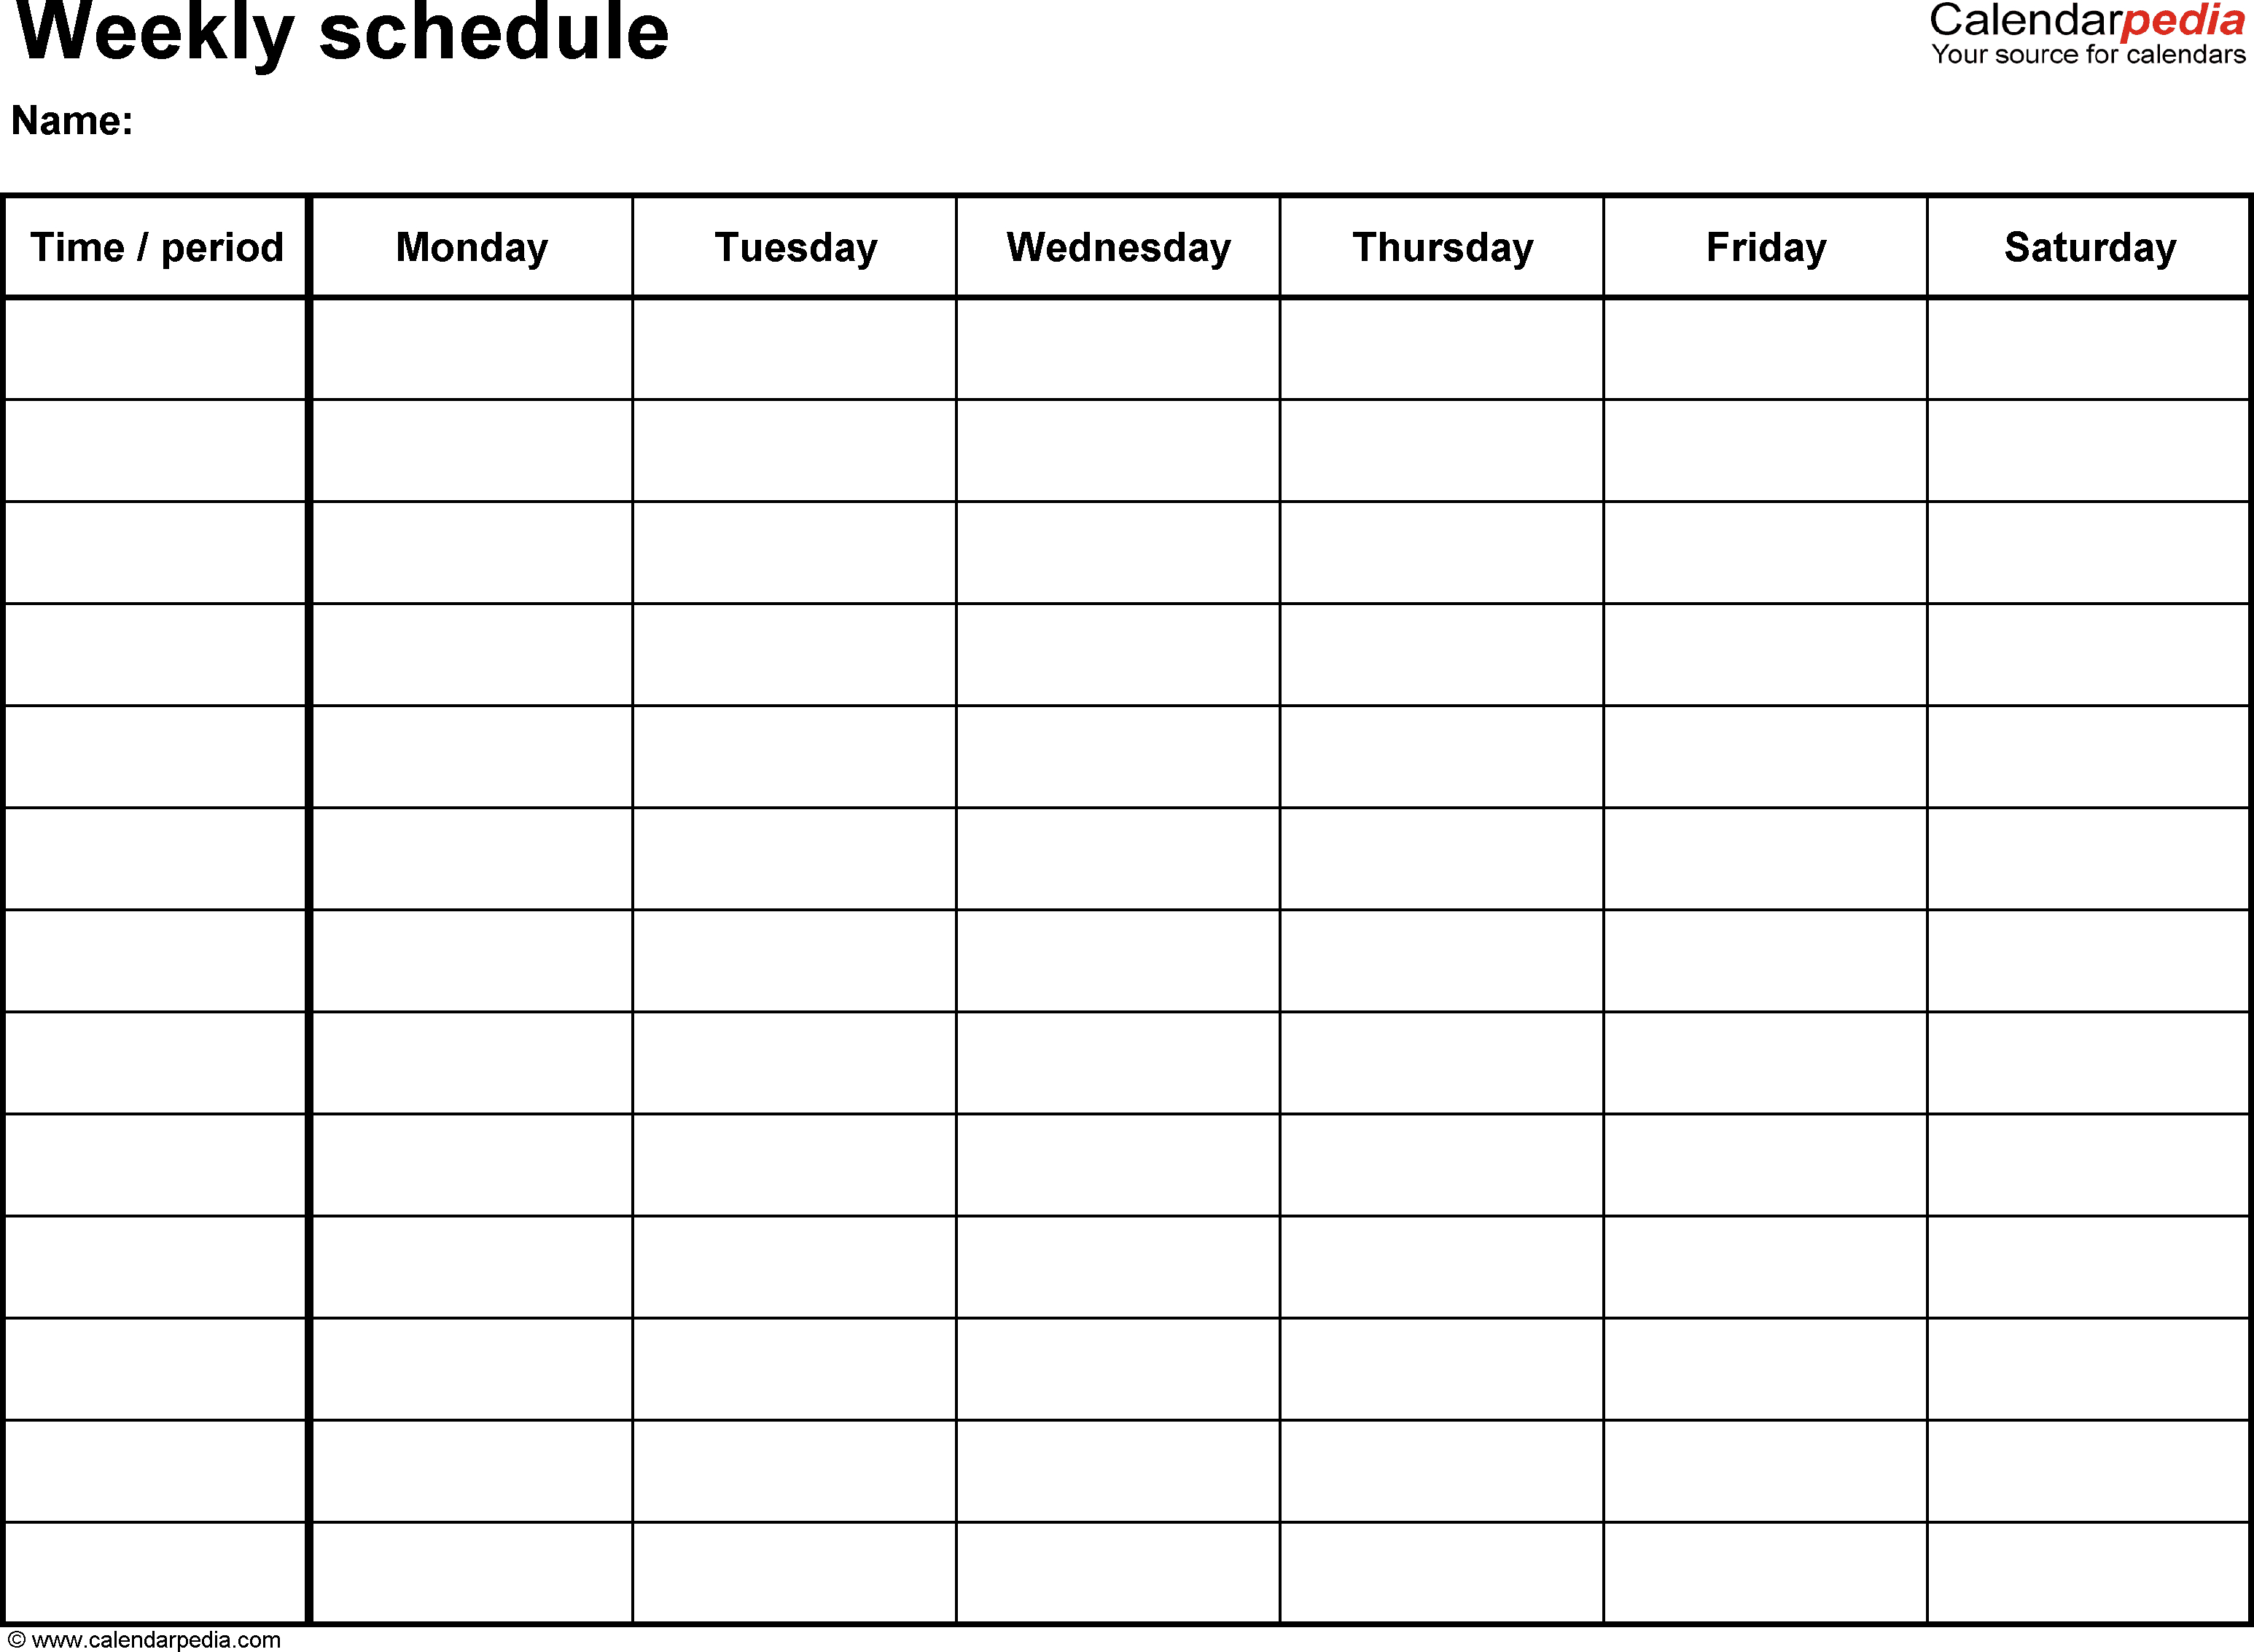 Free Weekly Schedule Templates For Word - 18 Templates with regard to Printable Blank Weekly Employee Schedule